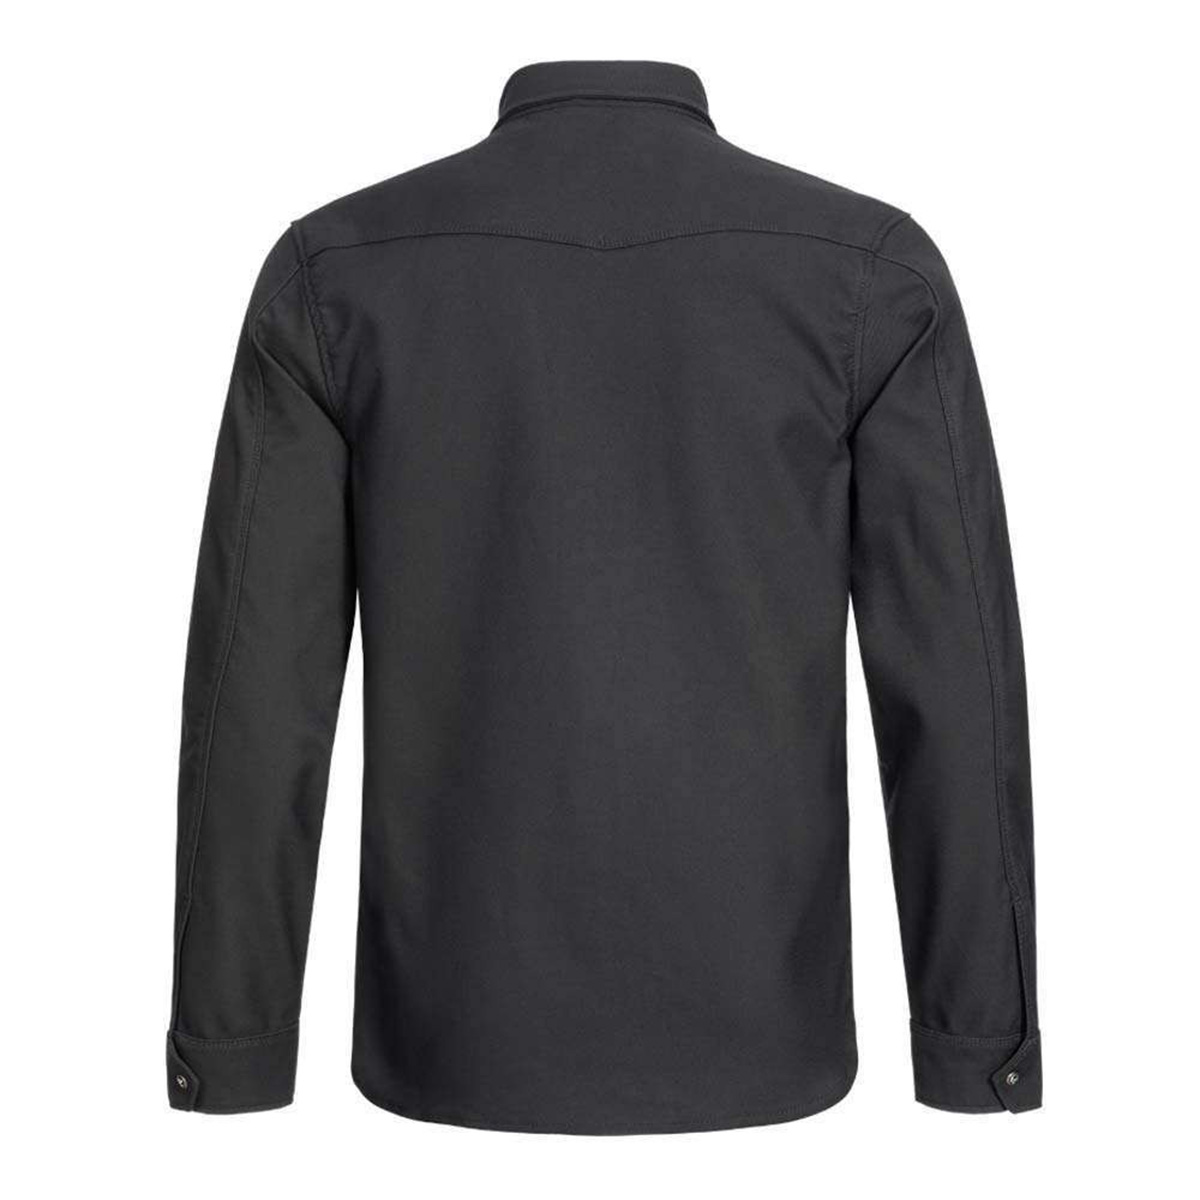 Rokker Black Jack Rider Shirt Thermal Lined